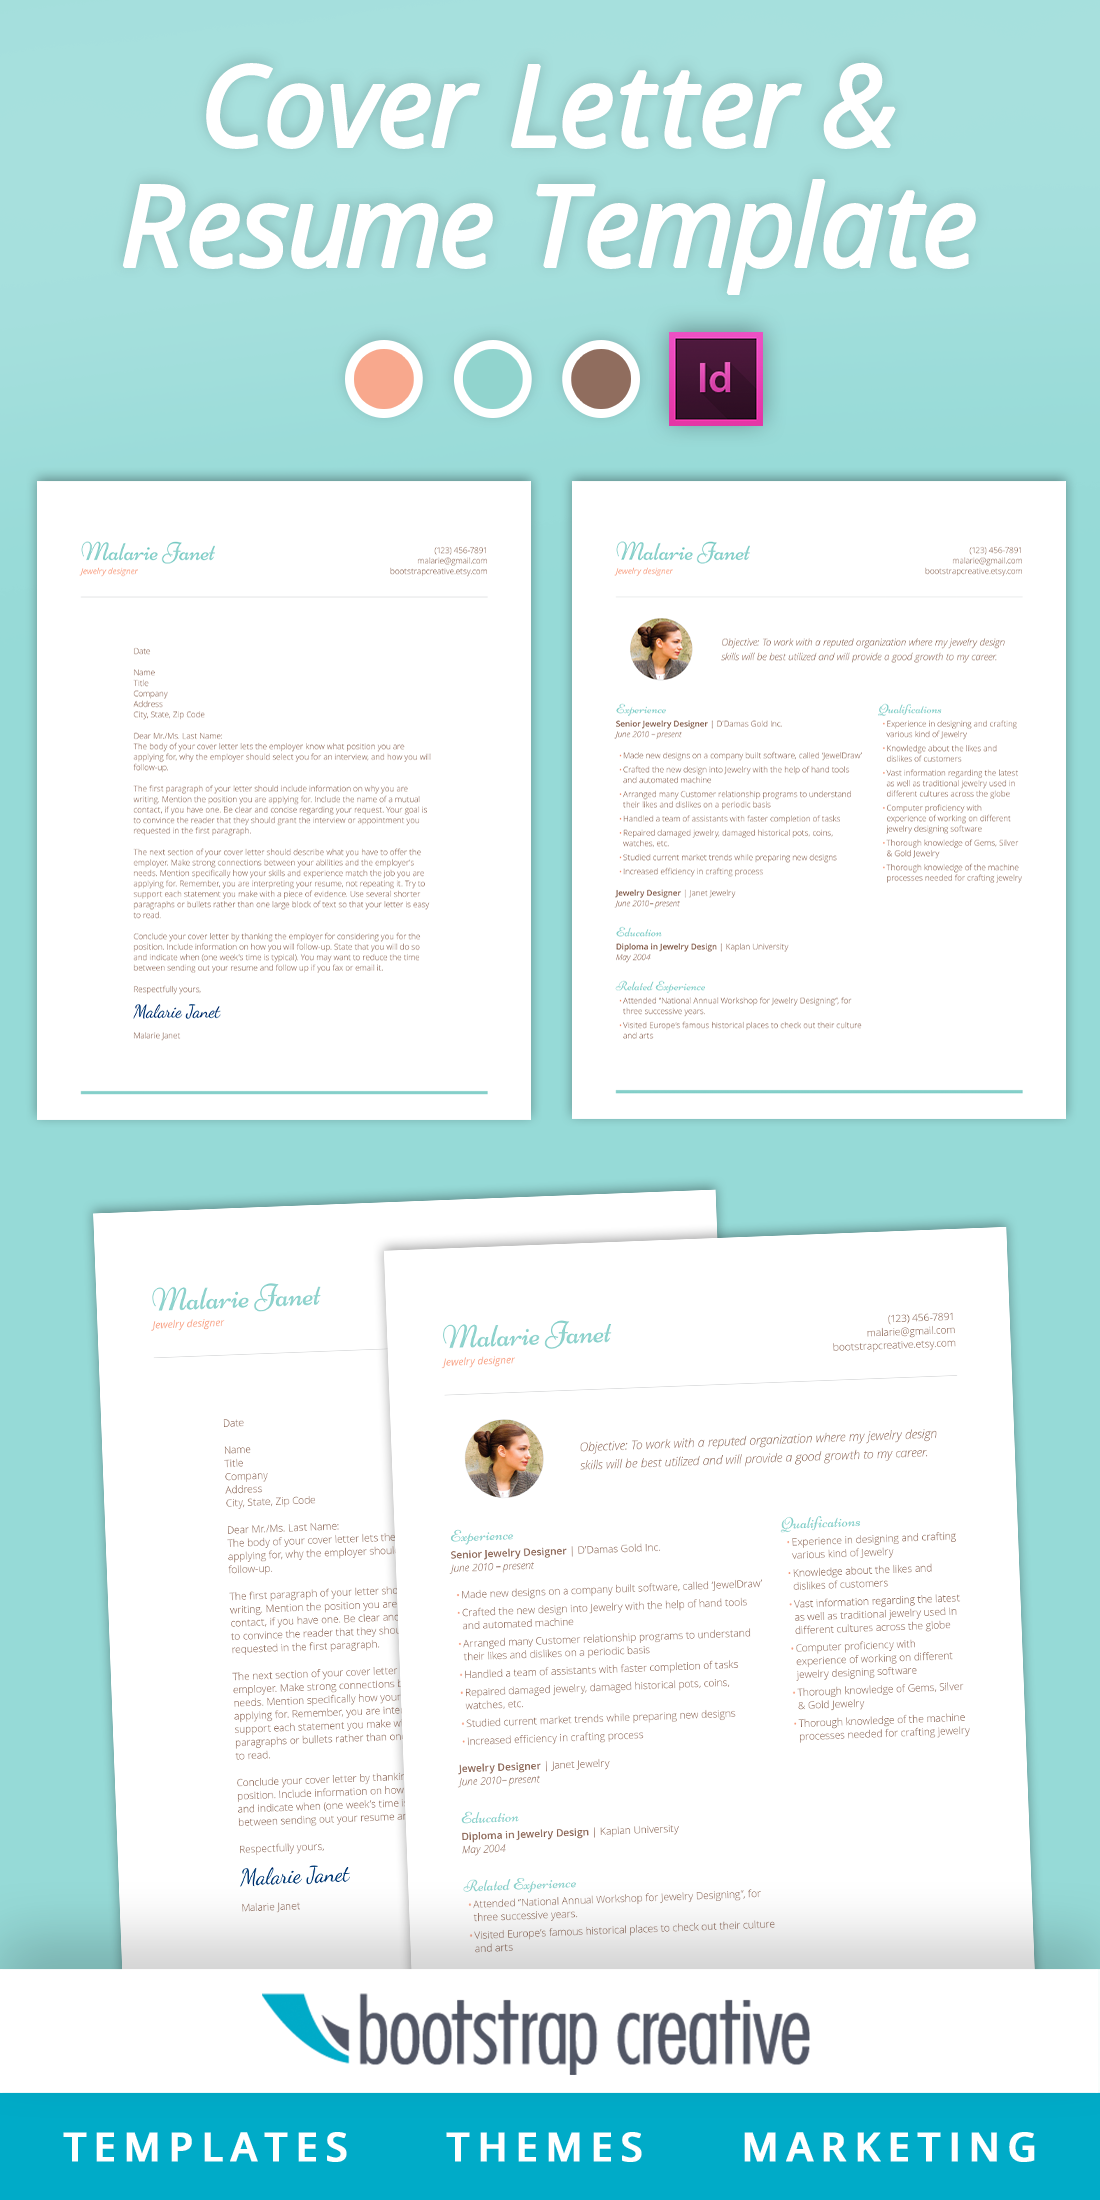 Buy Web Design Templates Themes For Hubspot WordPress Cover Letter For Resume Indesign Resume Template Resume Cover Letter Template